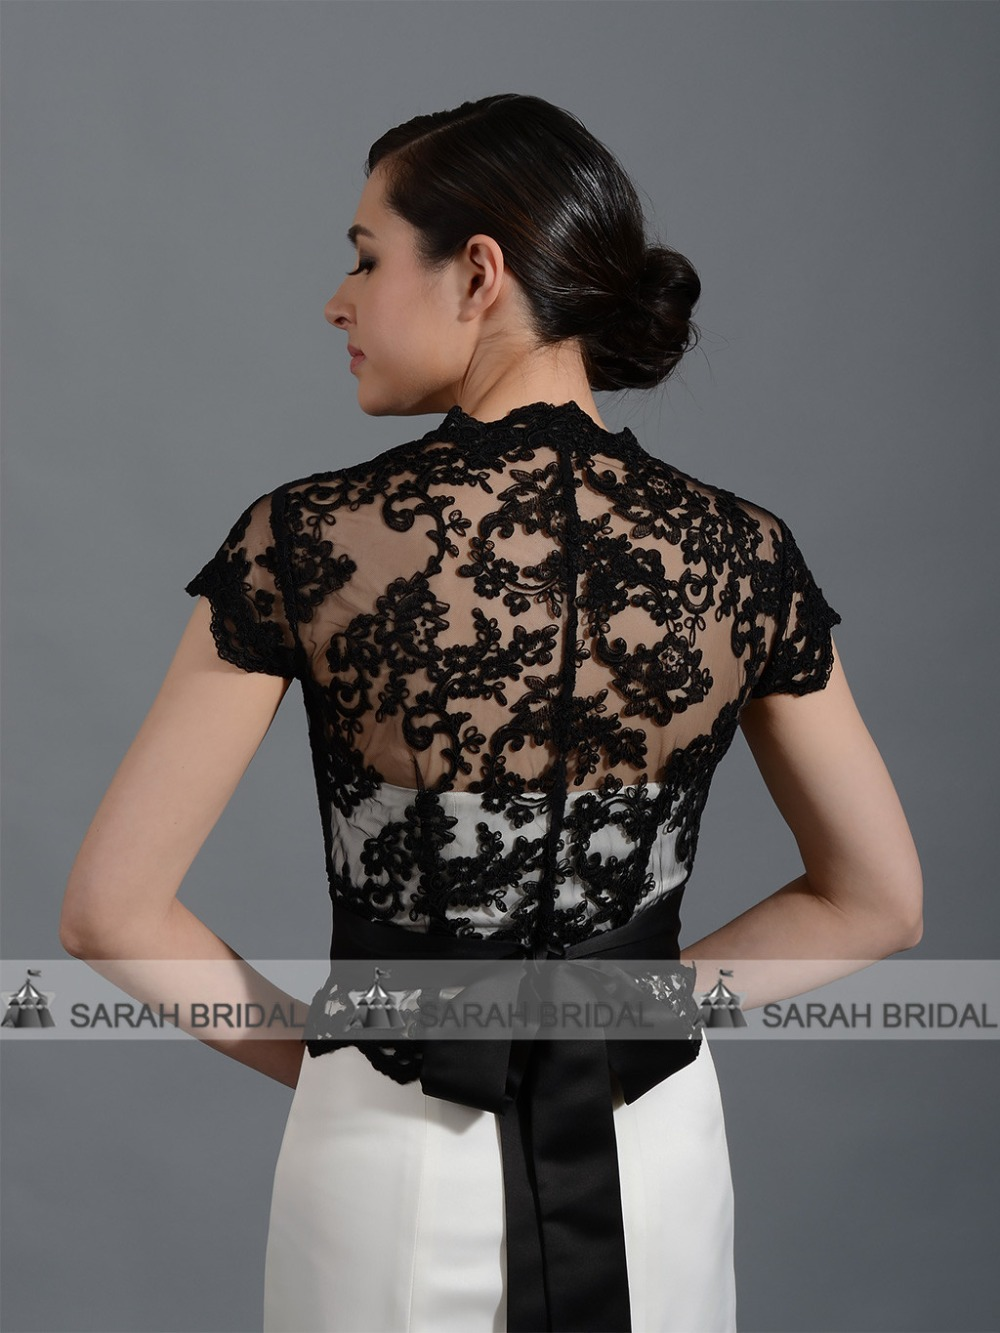 Black Lace Women Jacket Wrap For Evening Gowns In Stock Front Open Bridal  Bolero Shrug With Ribbon Lace Cap Stole PJ013-in Wedding Jackets   Wrap from  ... ada06253ff75